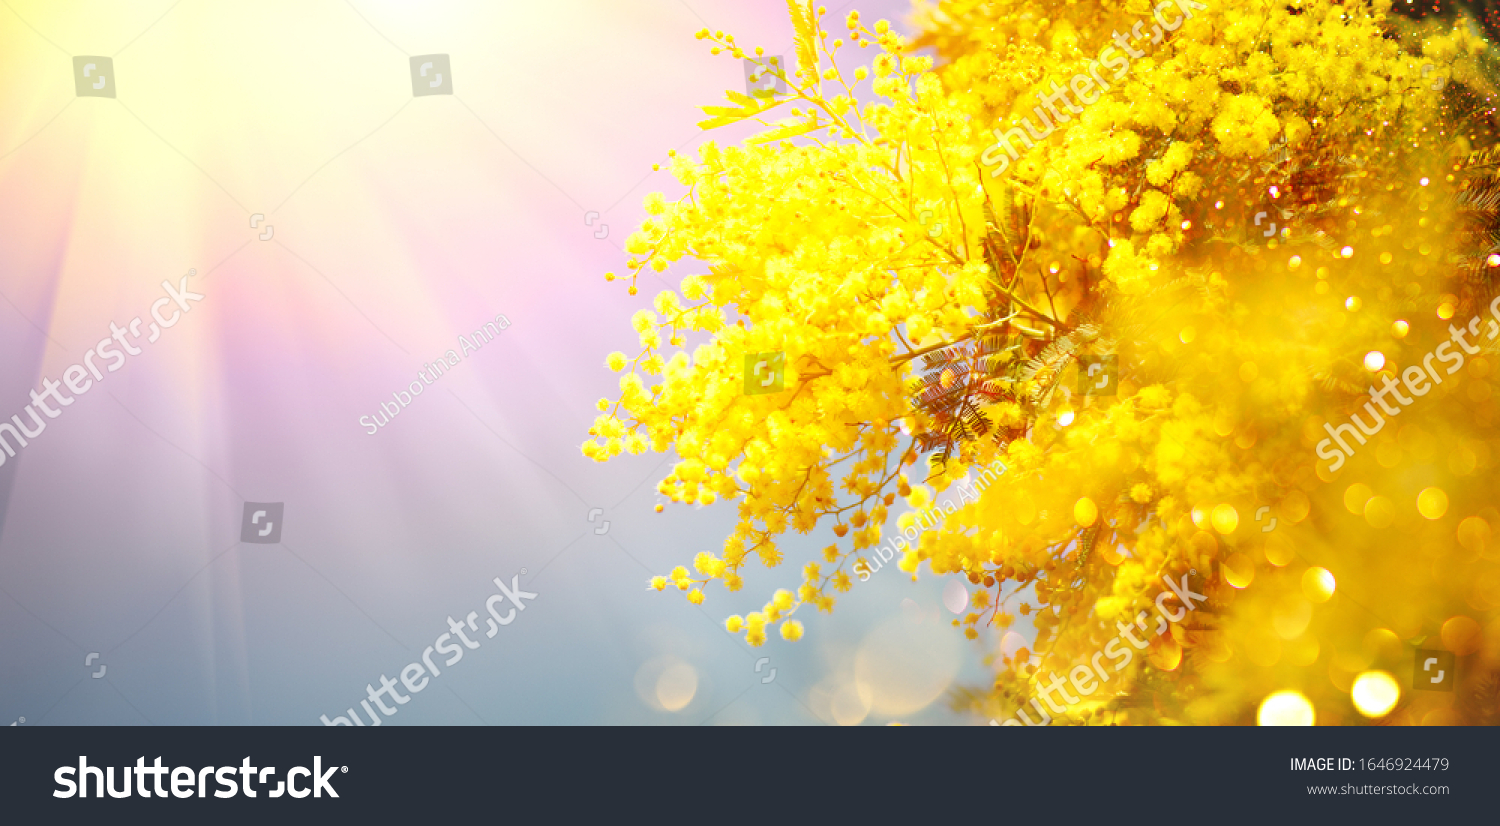 Mimosa Spring Flowers Easter background. Holiday backdrop, border art design. Blooming mimosa tree over blue sky, bright sun flare. Mother's Day. Garden, gardening. Spring holiday blossom #1646924479